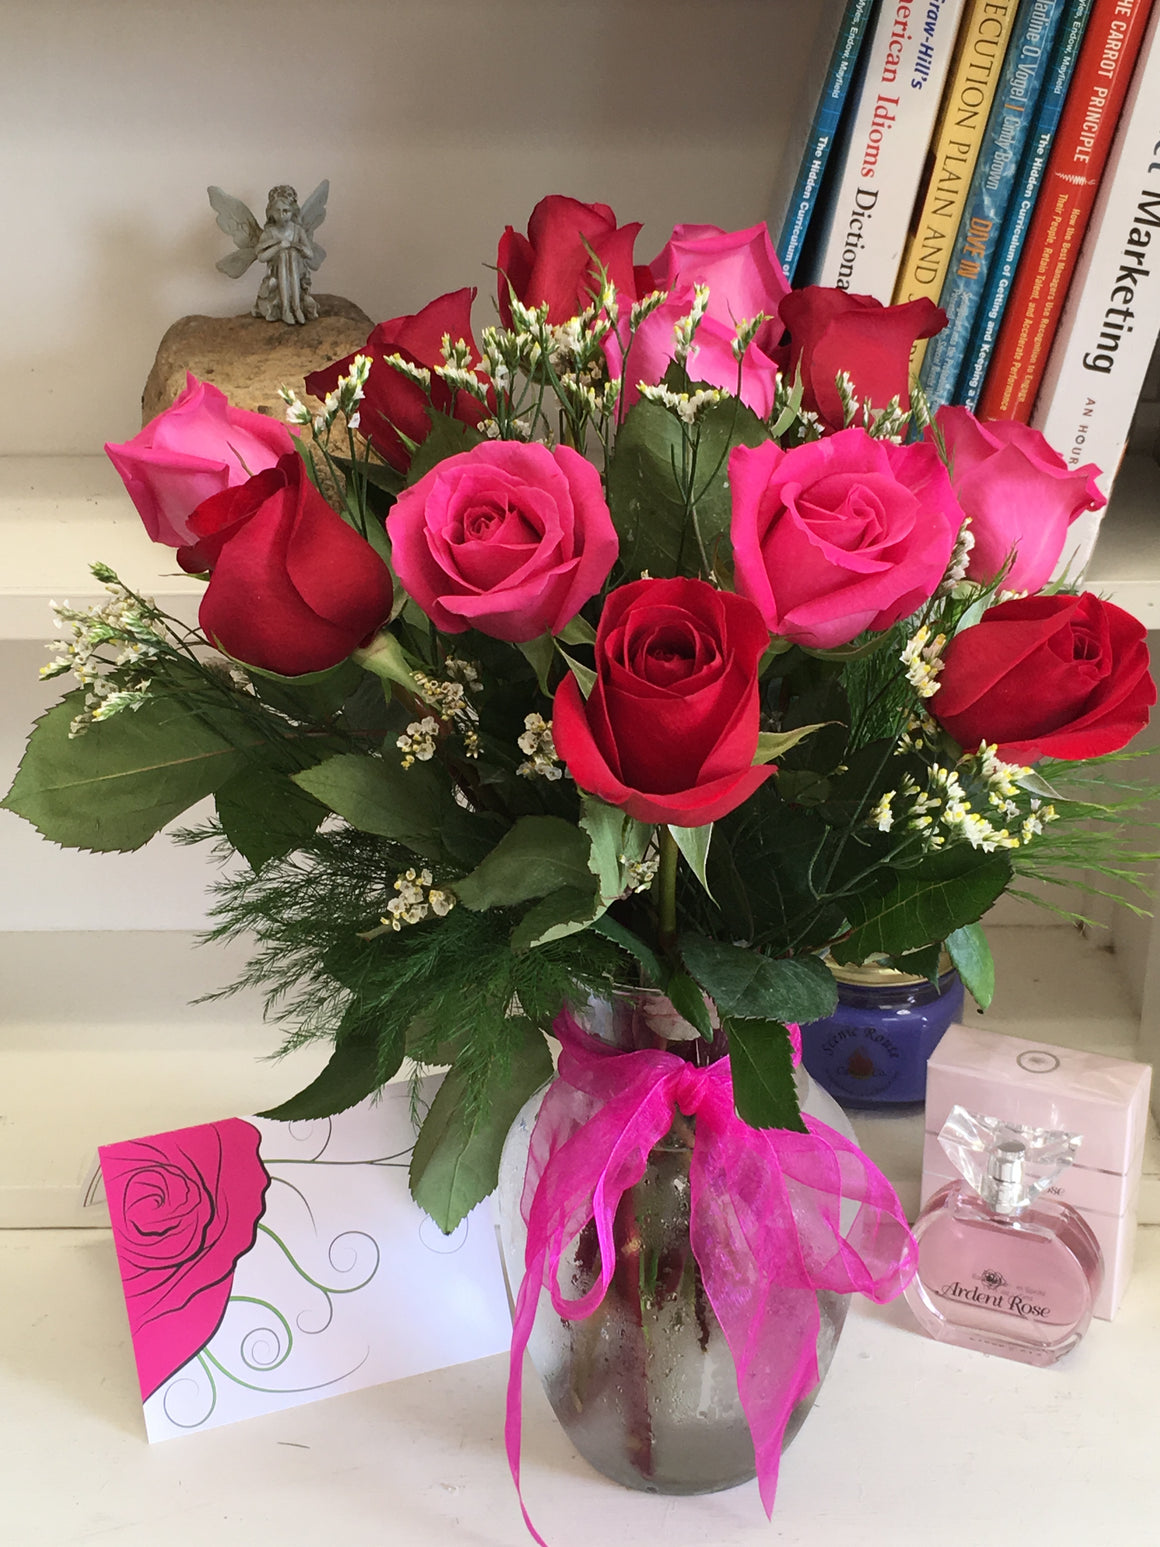 Pink and Red Rose Bouquet with Vase - Shipping Included!